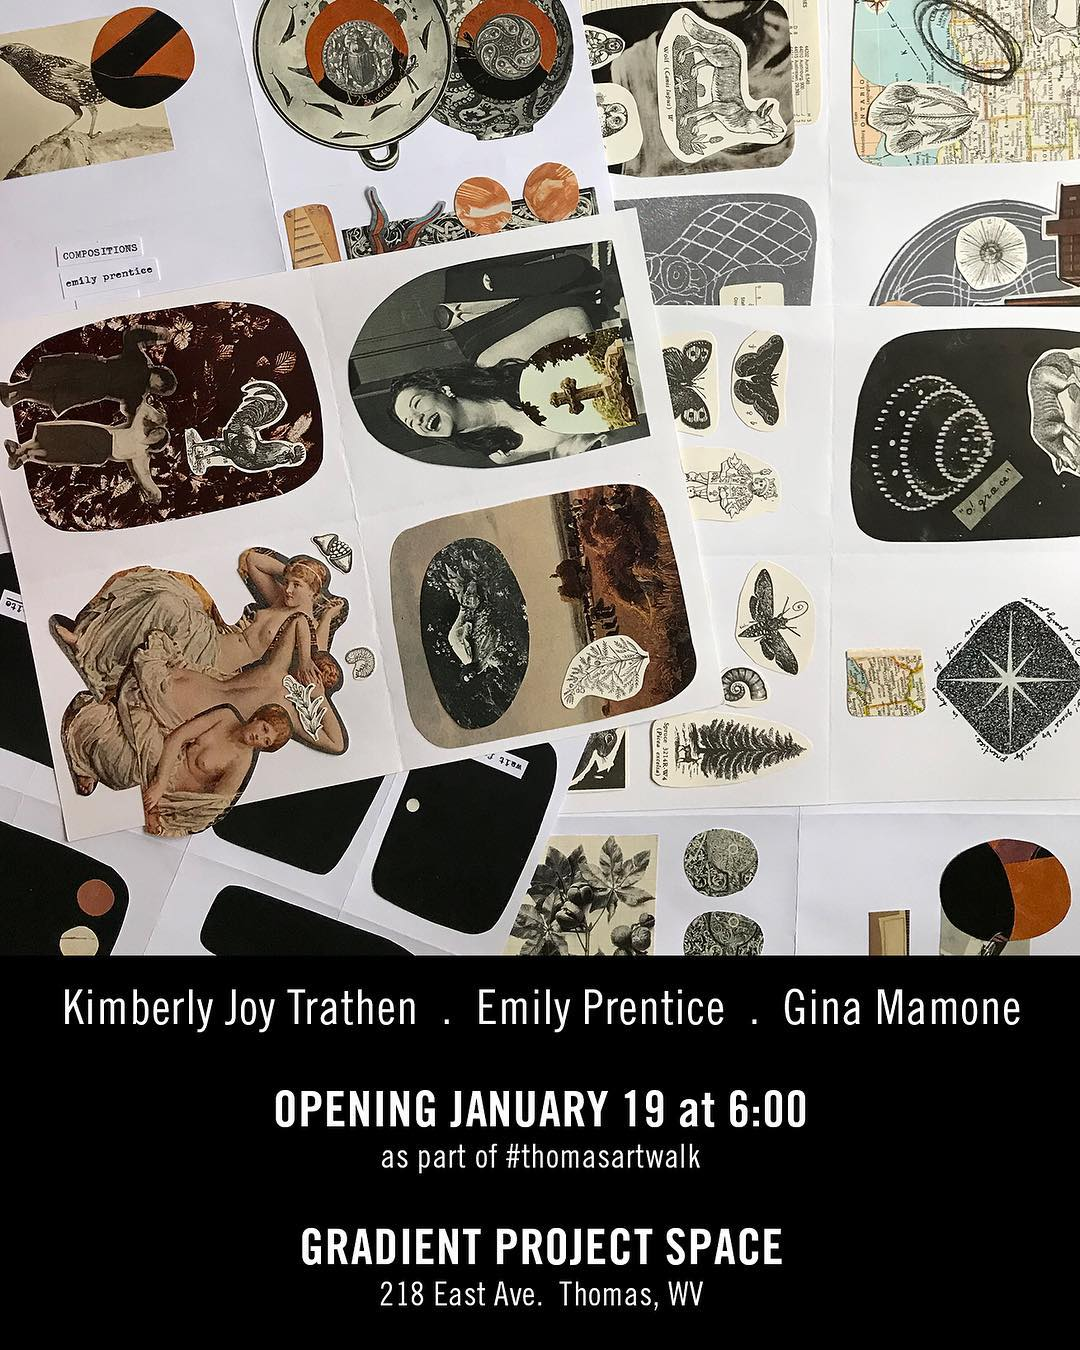 Saturday January 19th.  As part of #thomasartwalk • • • •  Gradient will be showing: • Dutchman's Puzzle by Kimberly Joy Trathen(@backstitched_design) • A showcase of zine work by Emily Prentice(@_emily_prentice_) • A text work by Gina Mamone(@queerappalachia) • • • •  Also in Thomas this night: • Poster making and letterpress demo at @talkingleaves_ from 5:00 • 'In Solidarity' group show at White Room @ 6:00 • @samgrayart at @creatureofthomaswv @ 6:00 • @sarahgoodyearstudios at @lamplightgallery @ 6:30 • @michaeldoigart at @tiptopcoffeeco … • • • • In solidarity with the international women's march and the greater movement for gender equality